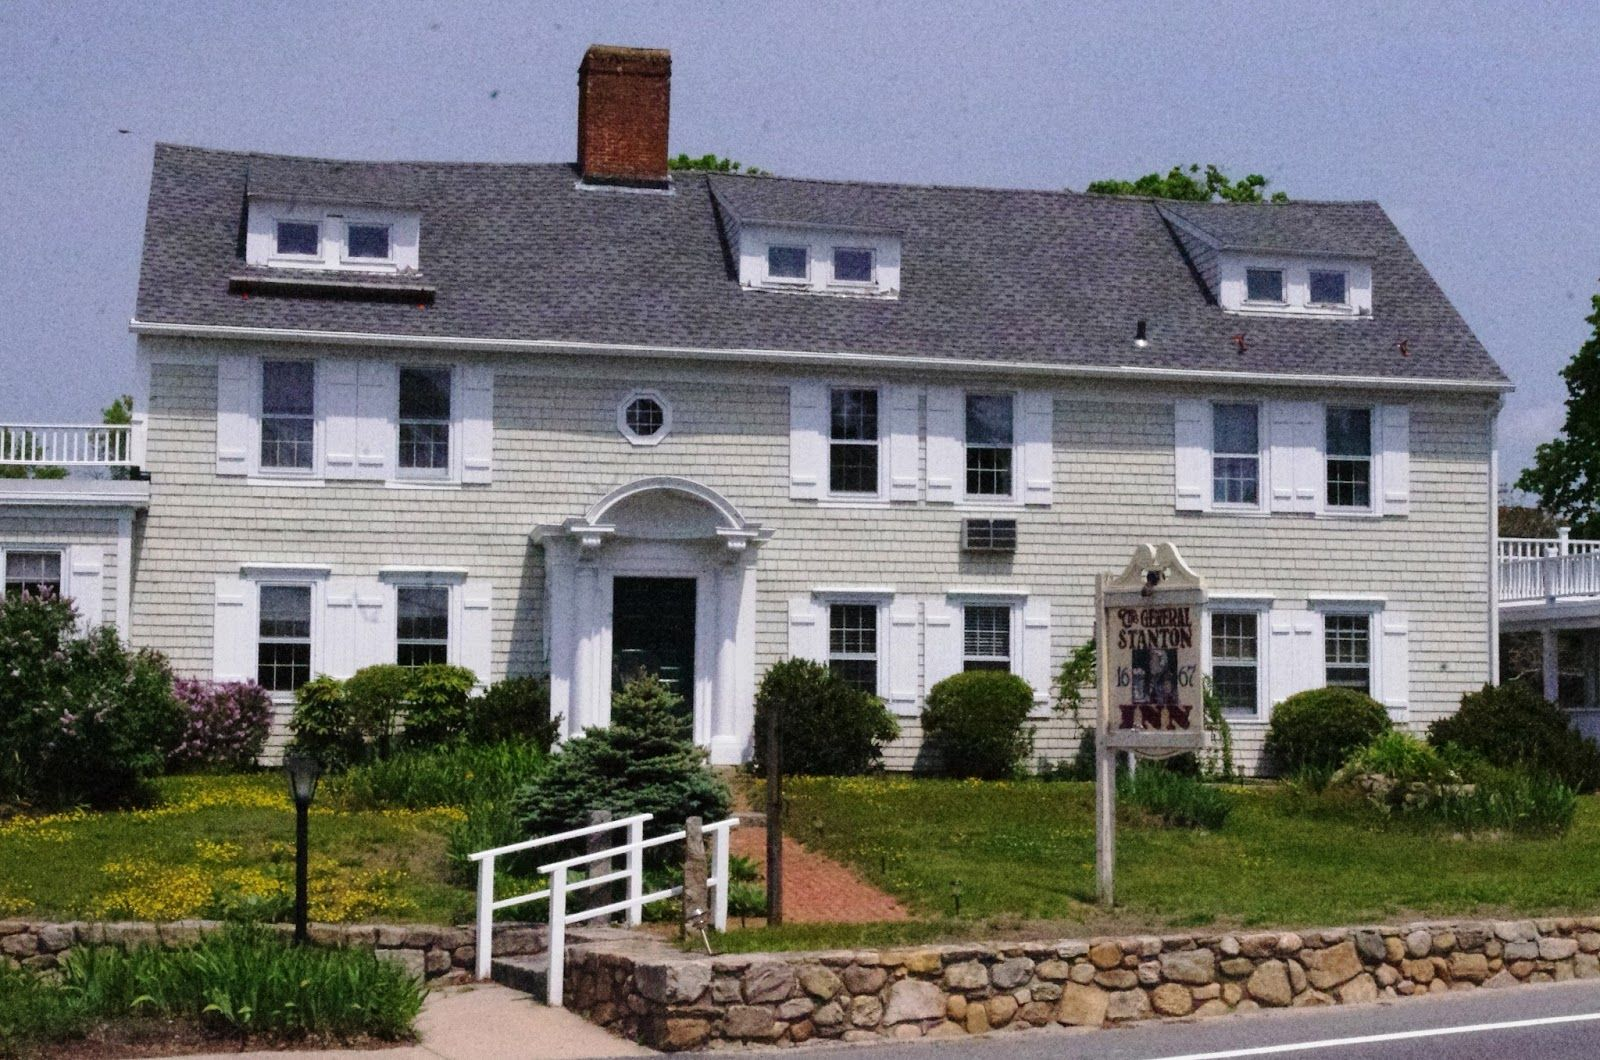 ri-general-stanton-inn-haunted-journeys